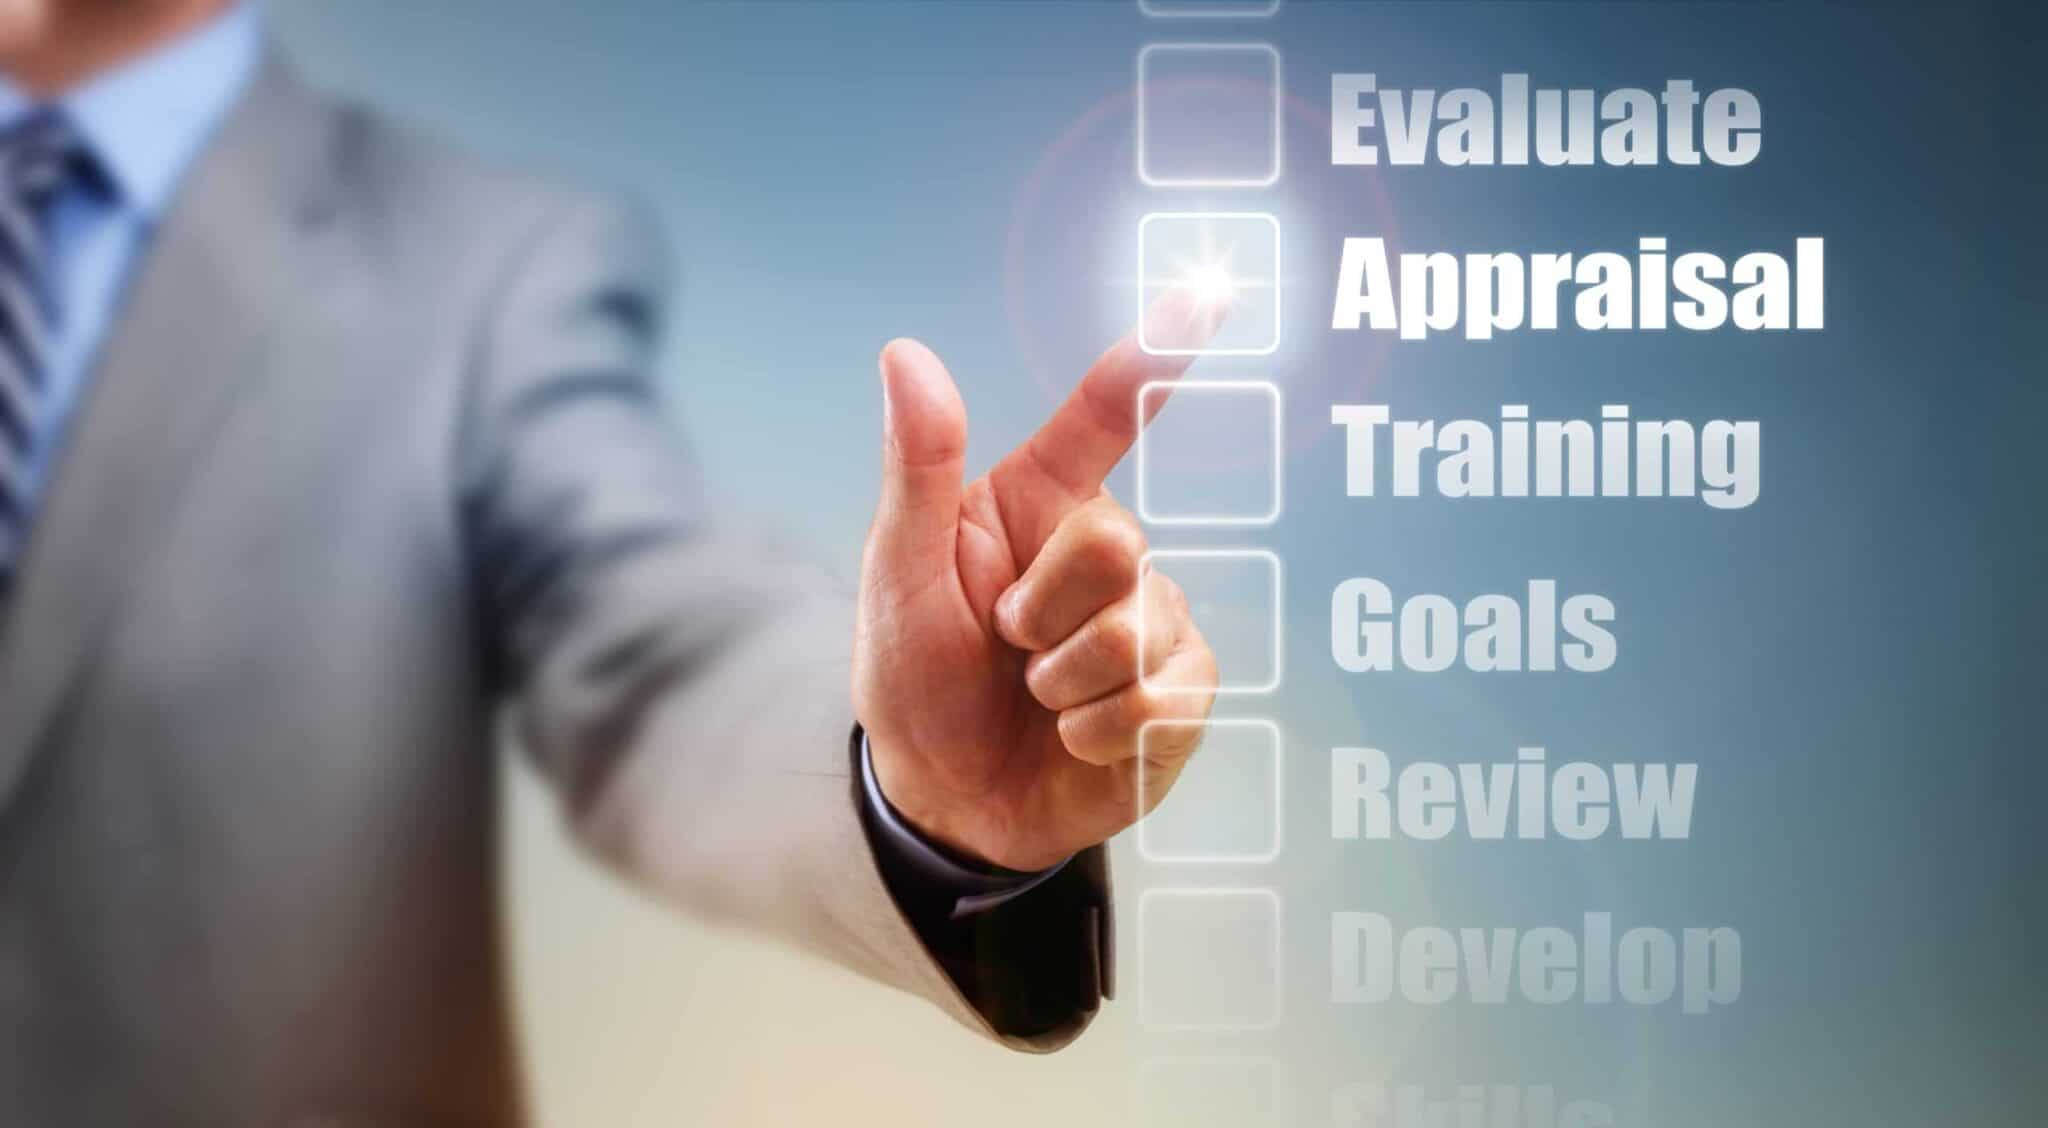 Businessman selecting self improvement options for appraisal, goals and training